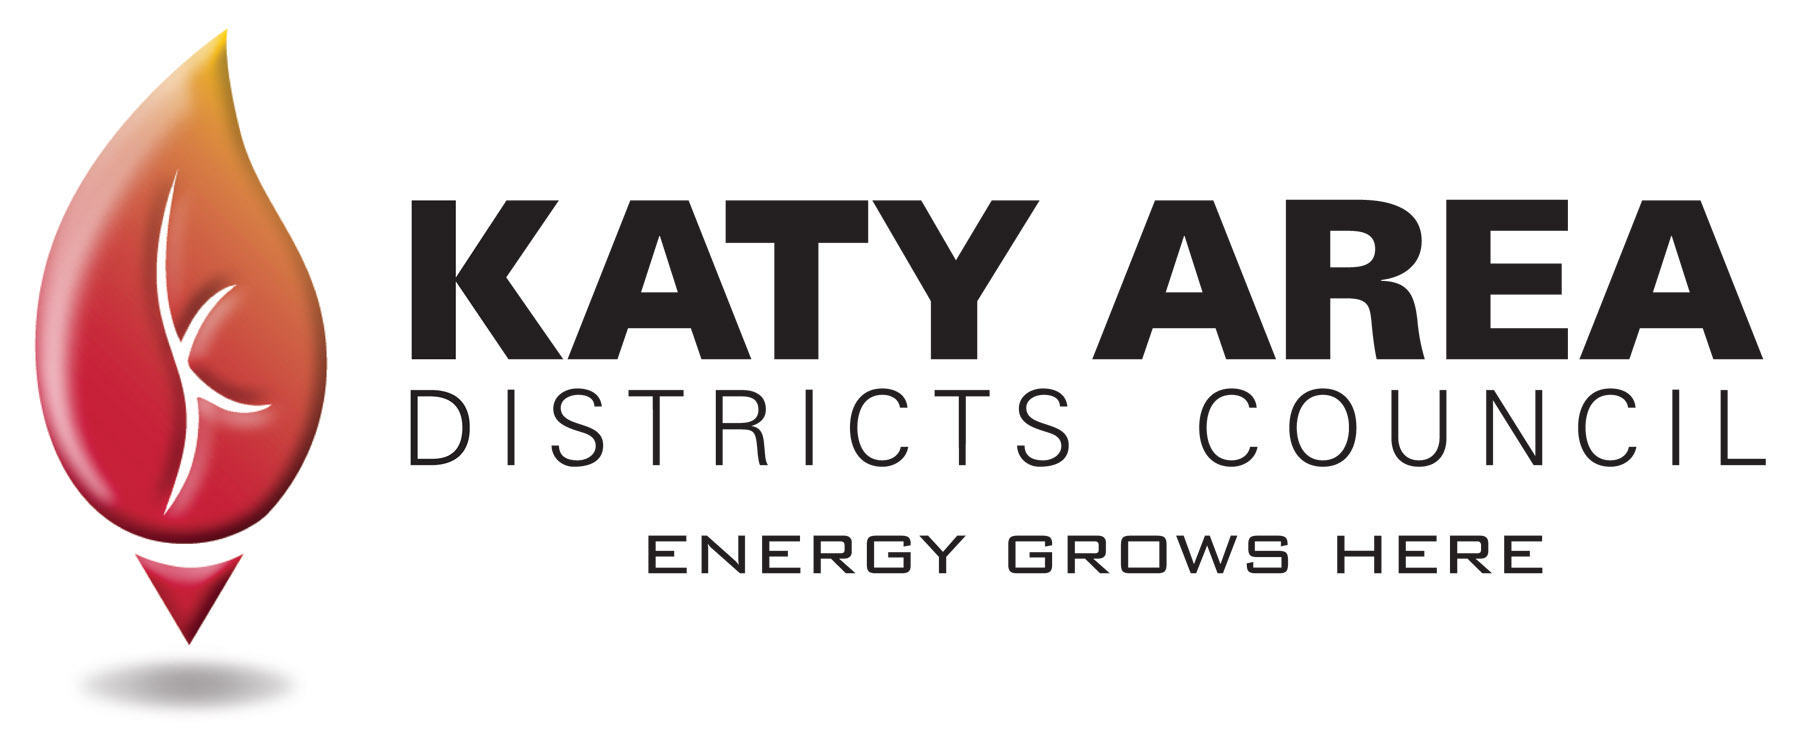 Katy Area Districts Council Slide Image